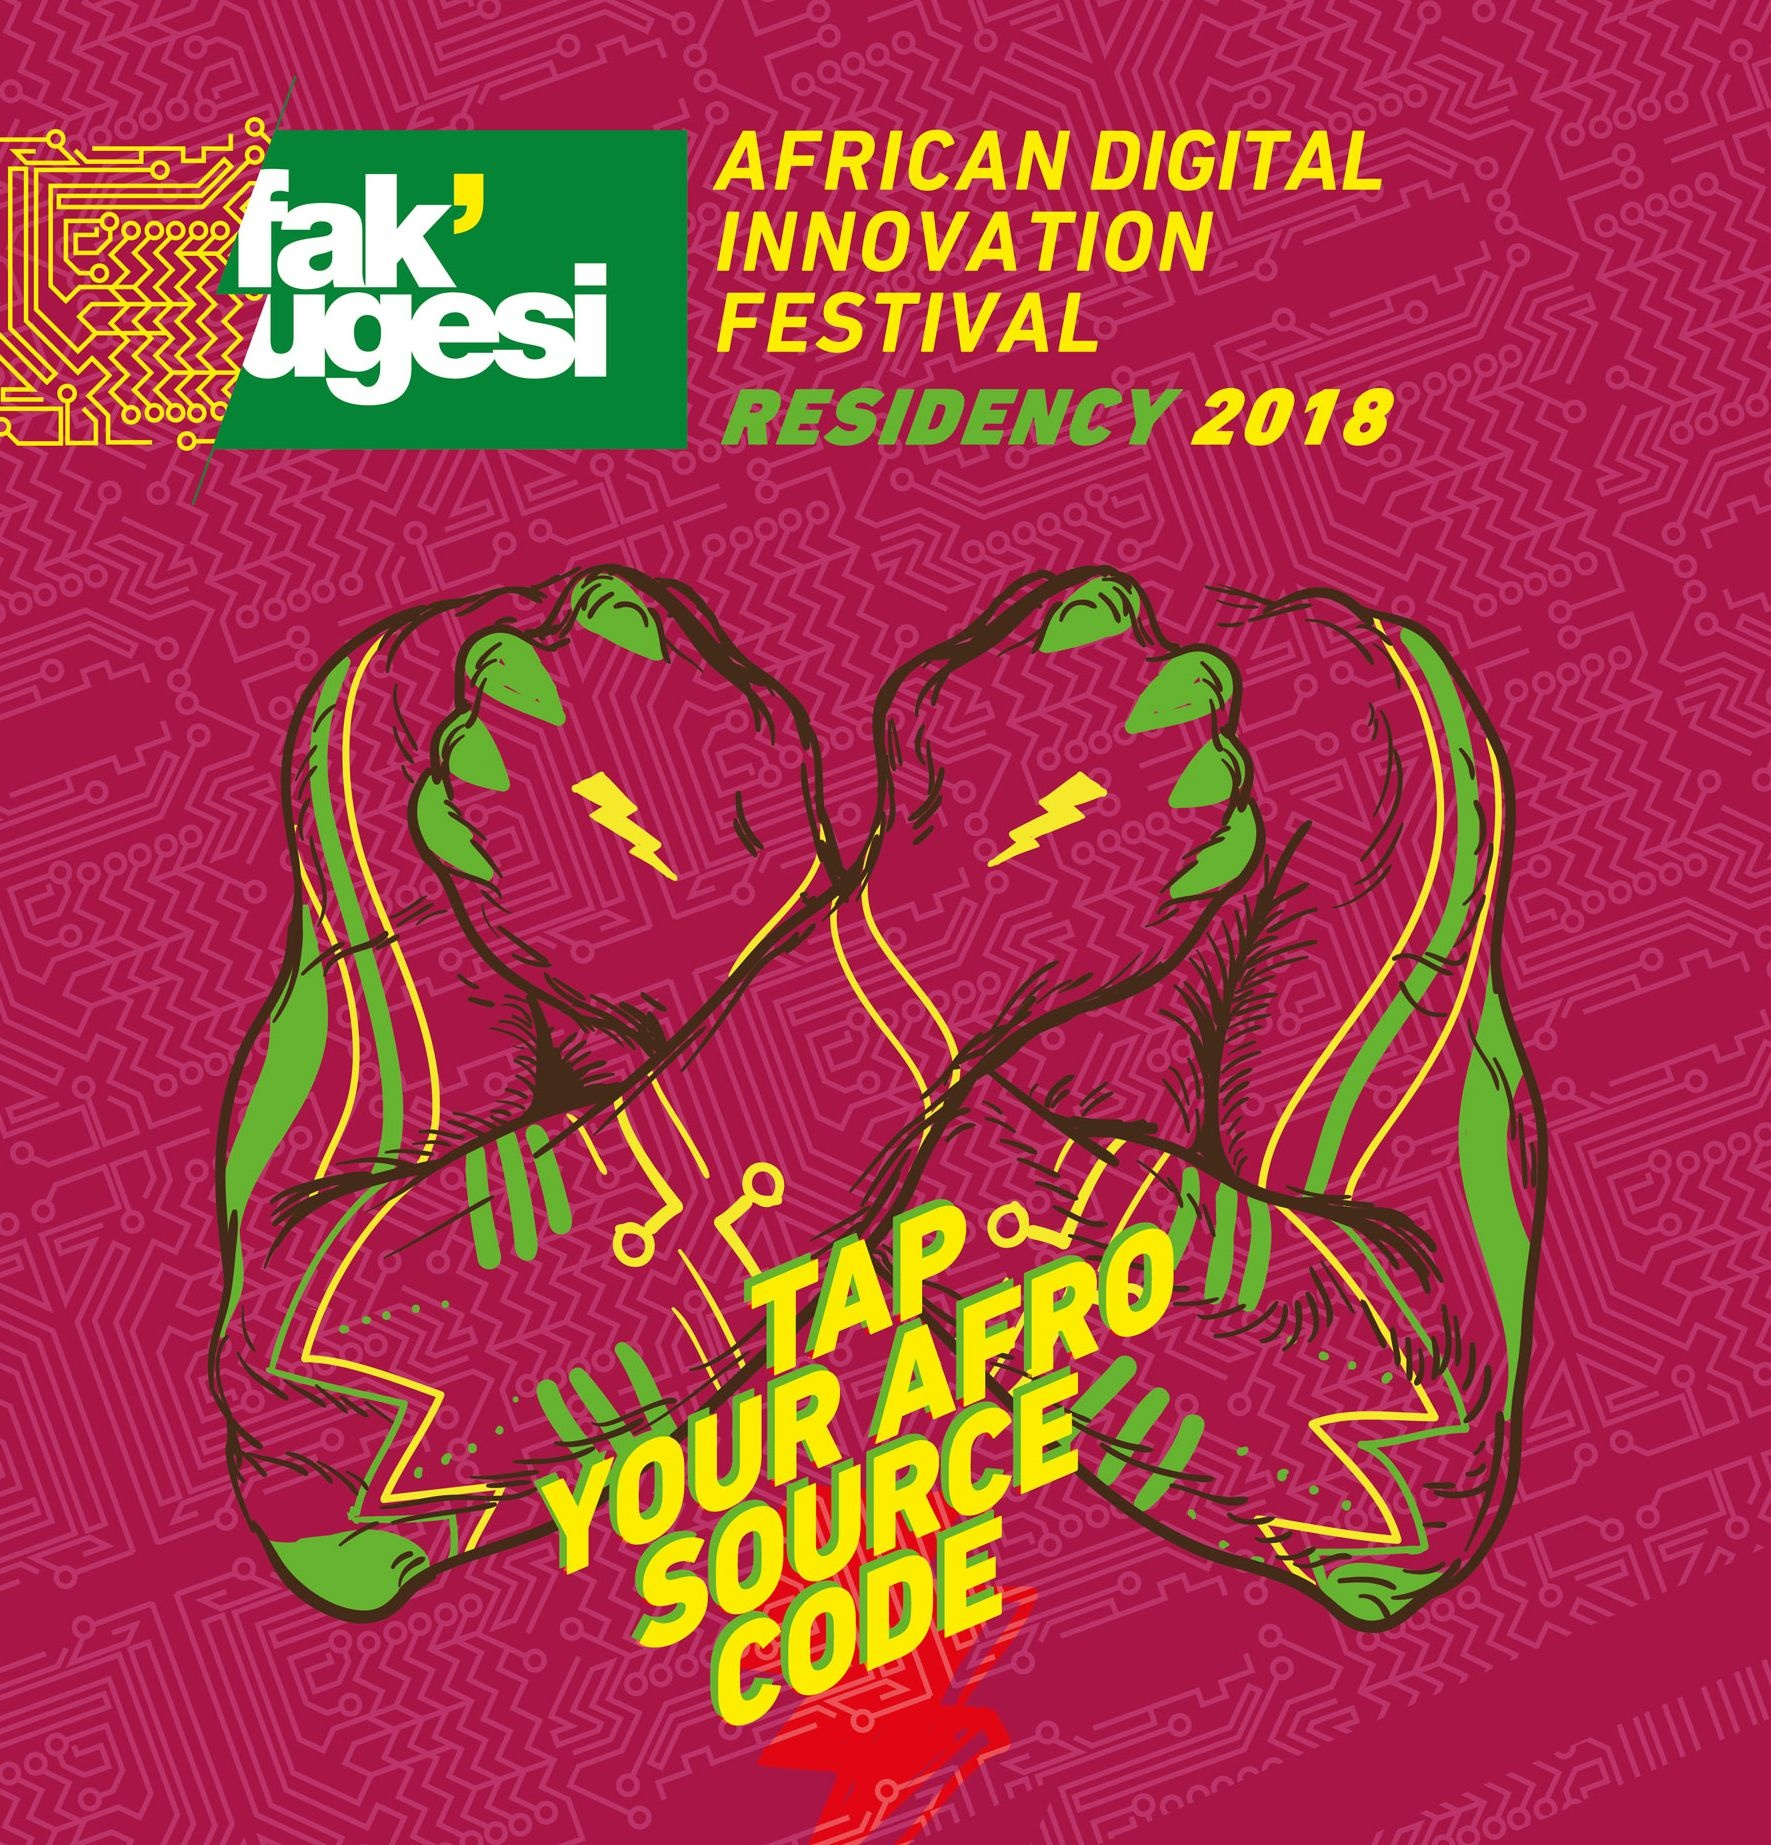 African Digital Innovation Festival Poster with two arms crossed holding fists